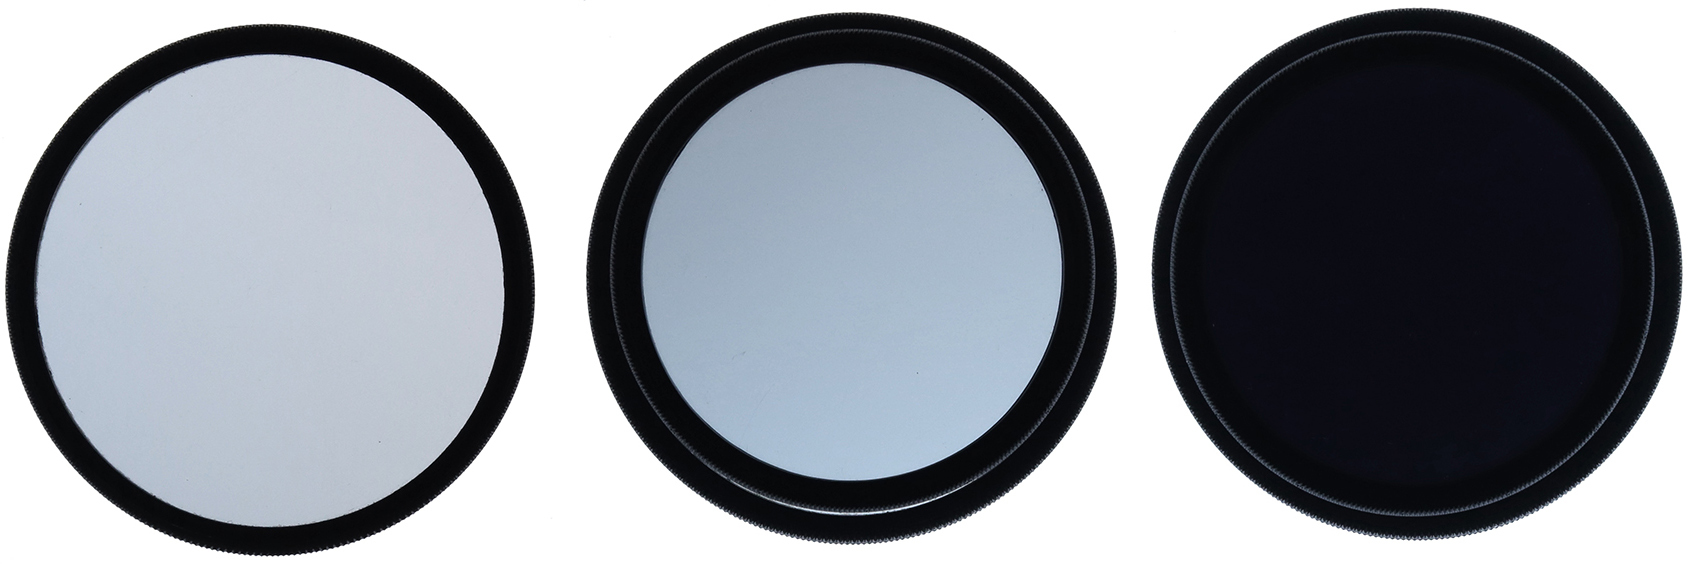 78e169618fc Understanding Polarizing Filters - The American Society of Cinematographers